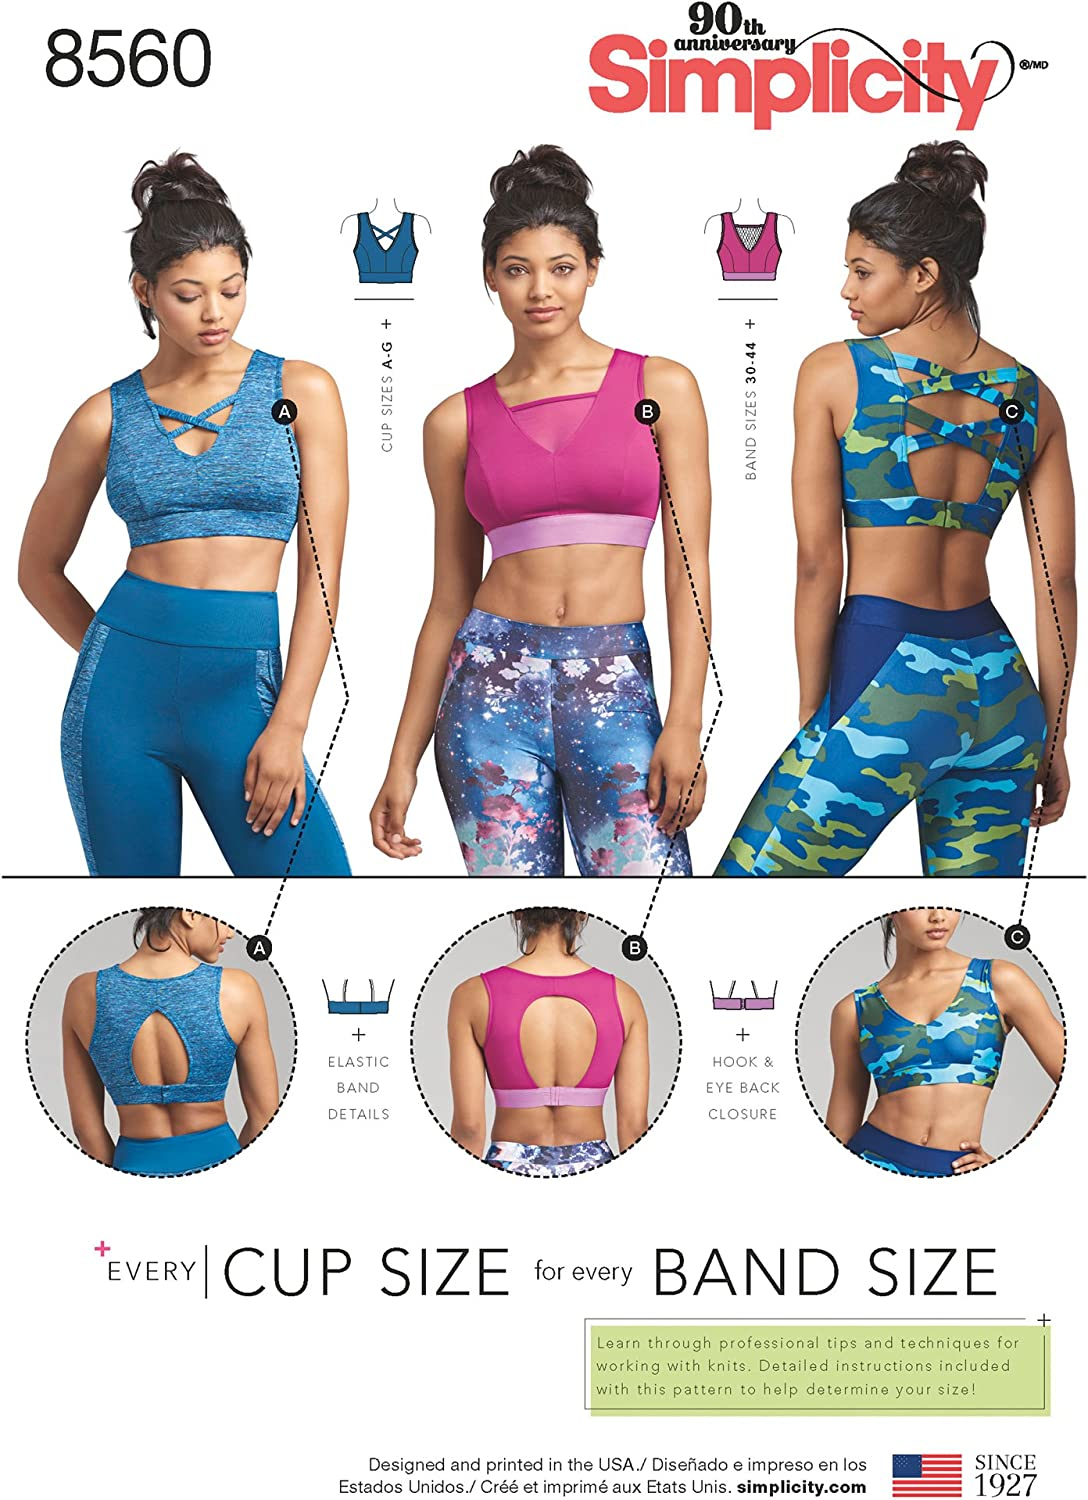 NEW before selling Simplicity Spring new work one after another US8560A Lined Women's Sports Sewing Siz Patterns Bra